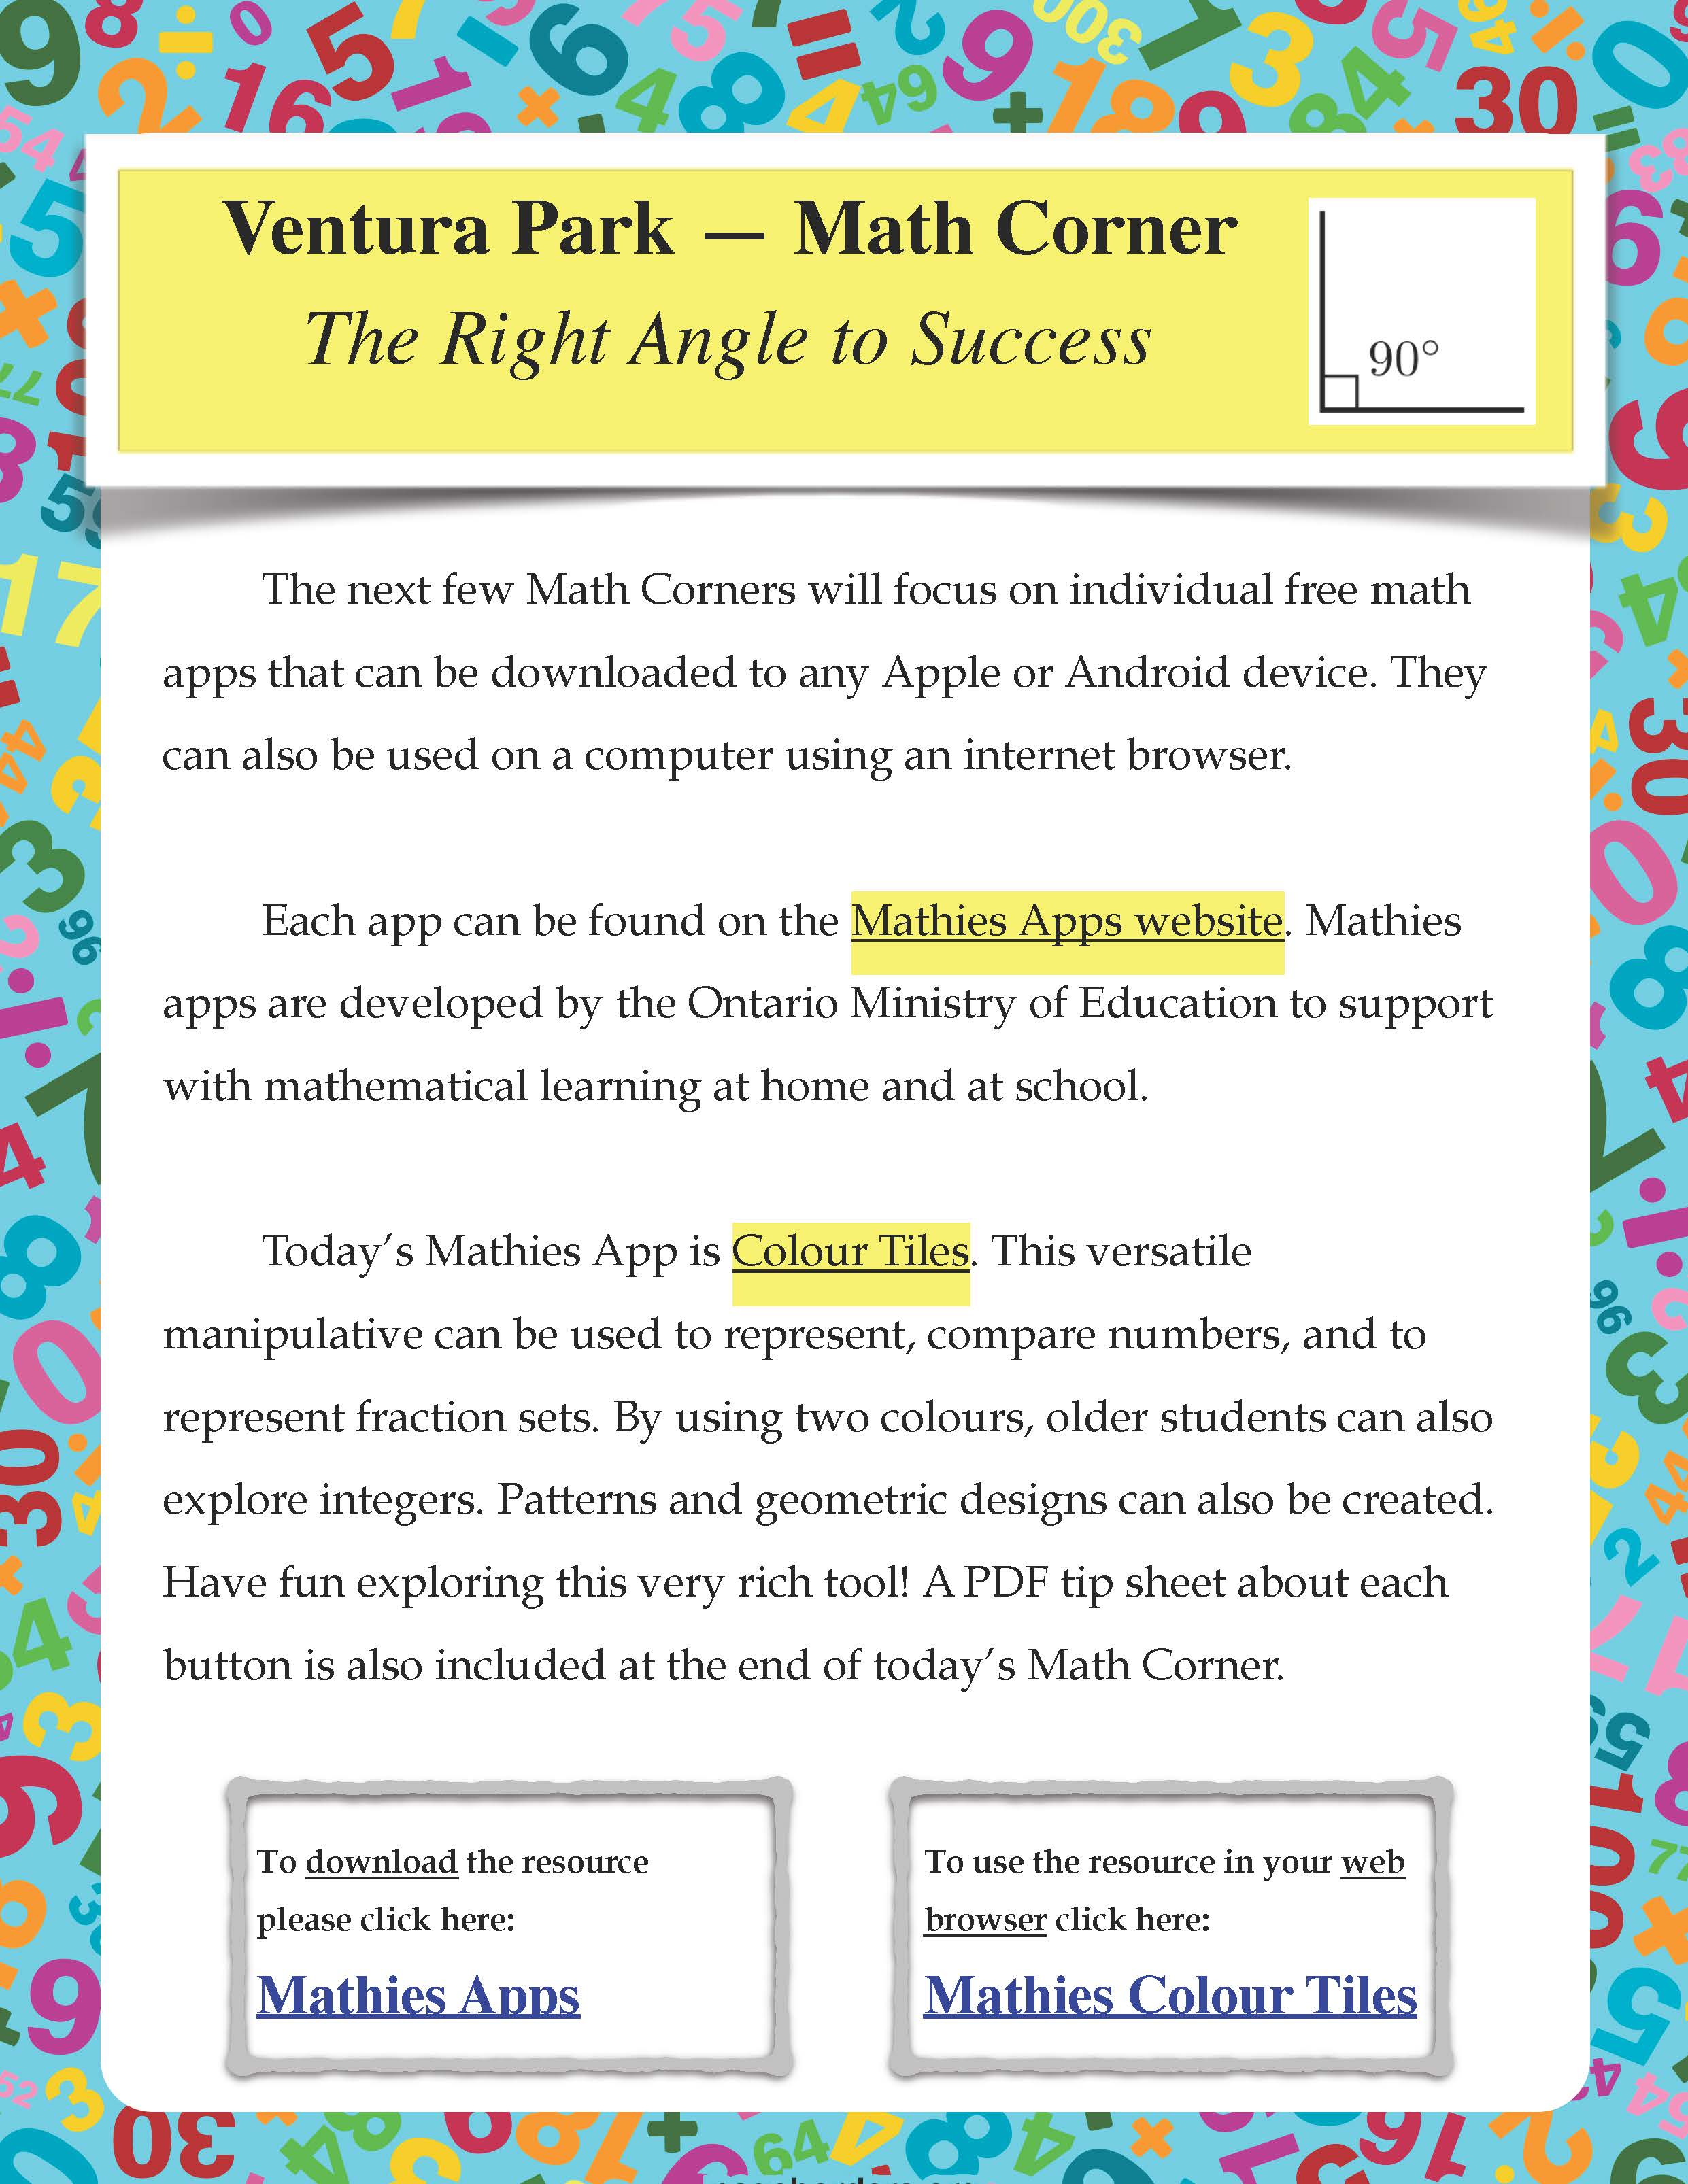 vpps math corner the right angle to success ventura park ps blog